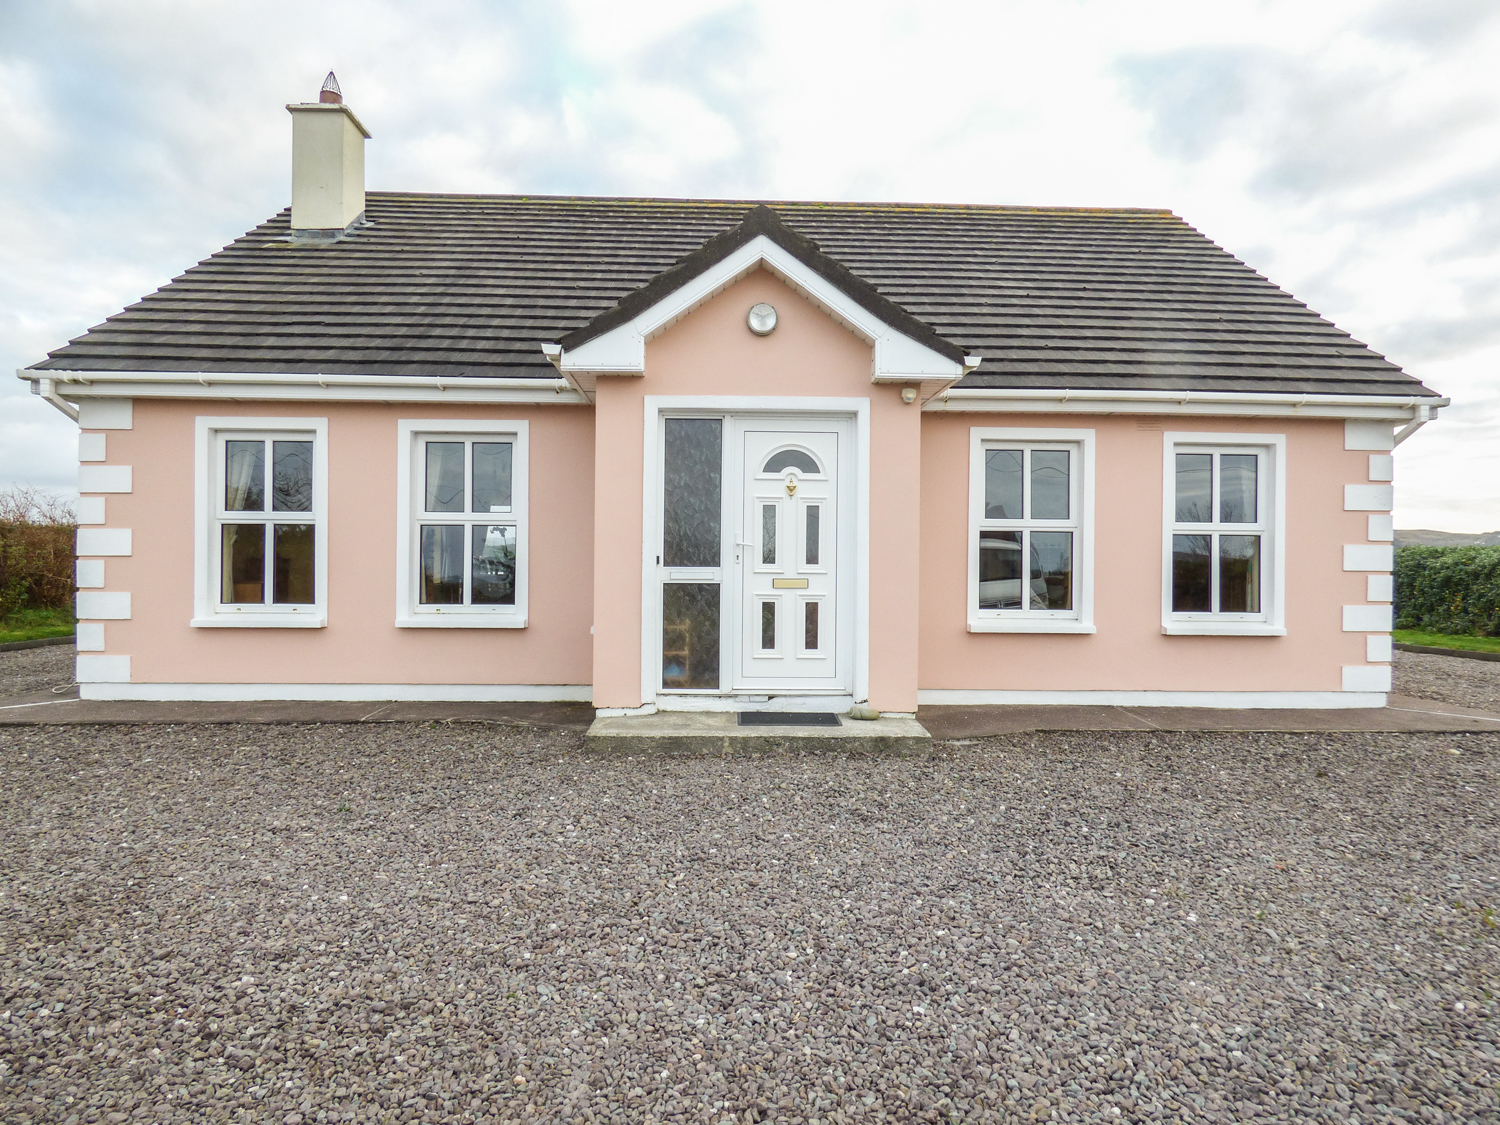 2 bedroom Cottage for rent in Portmagee